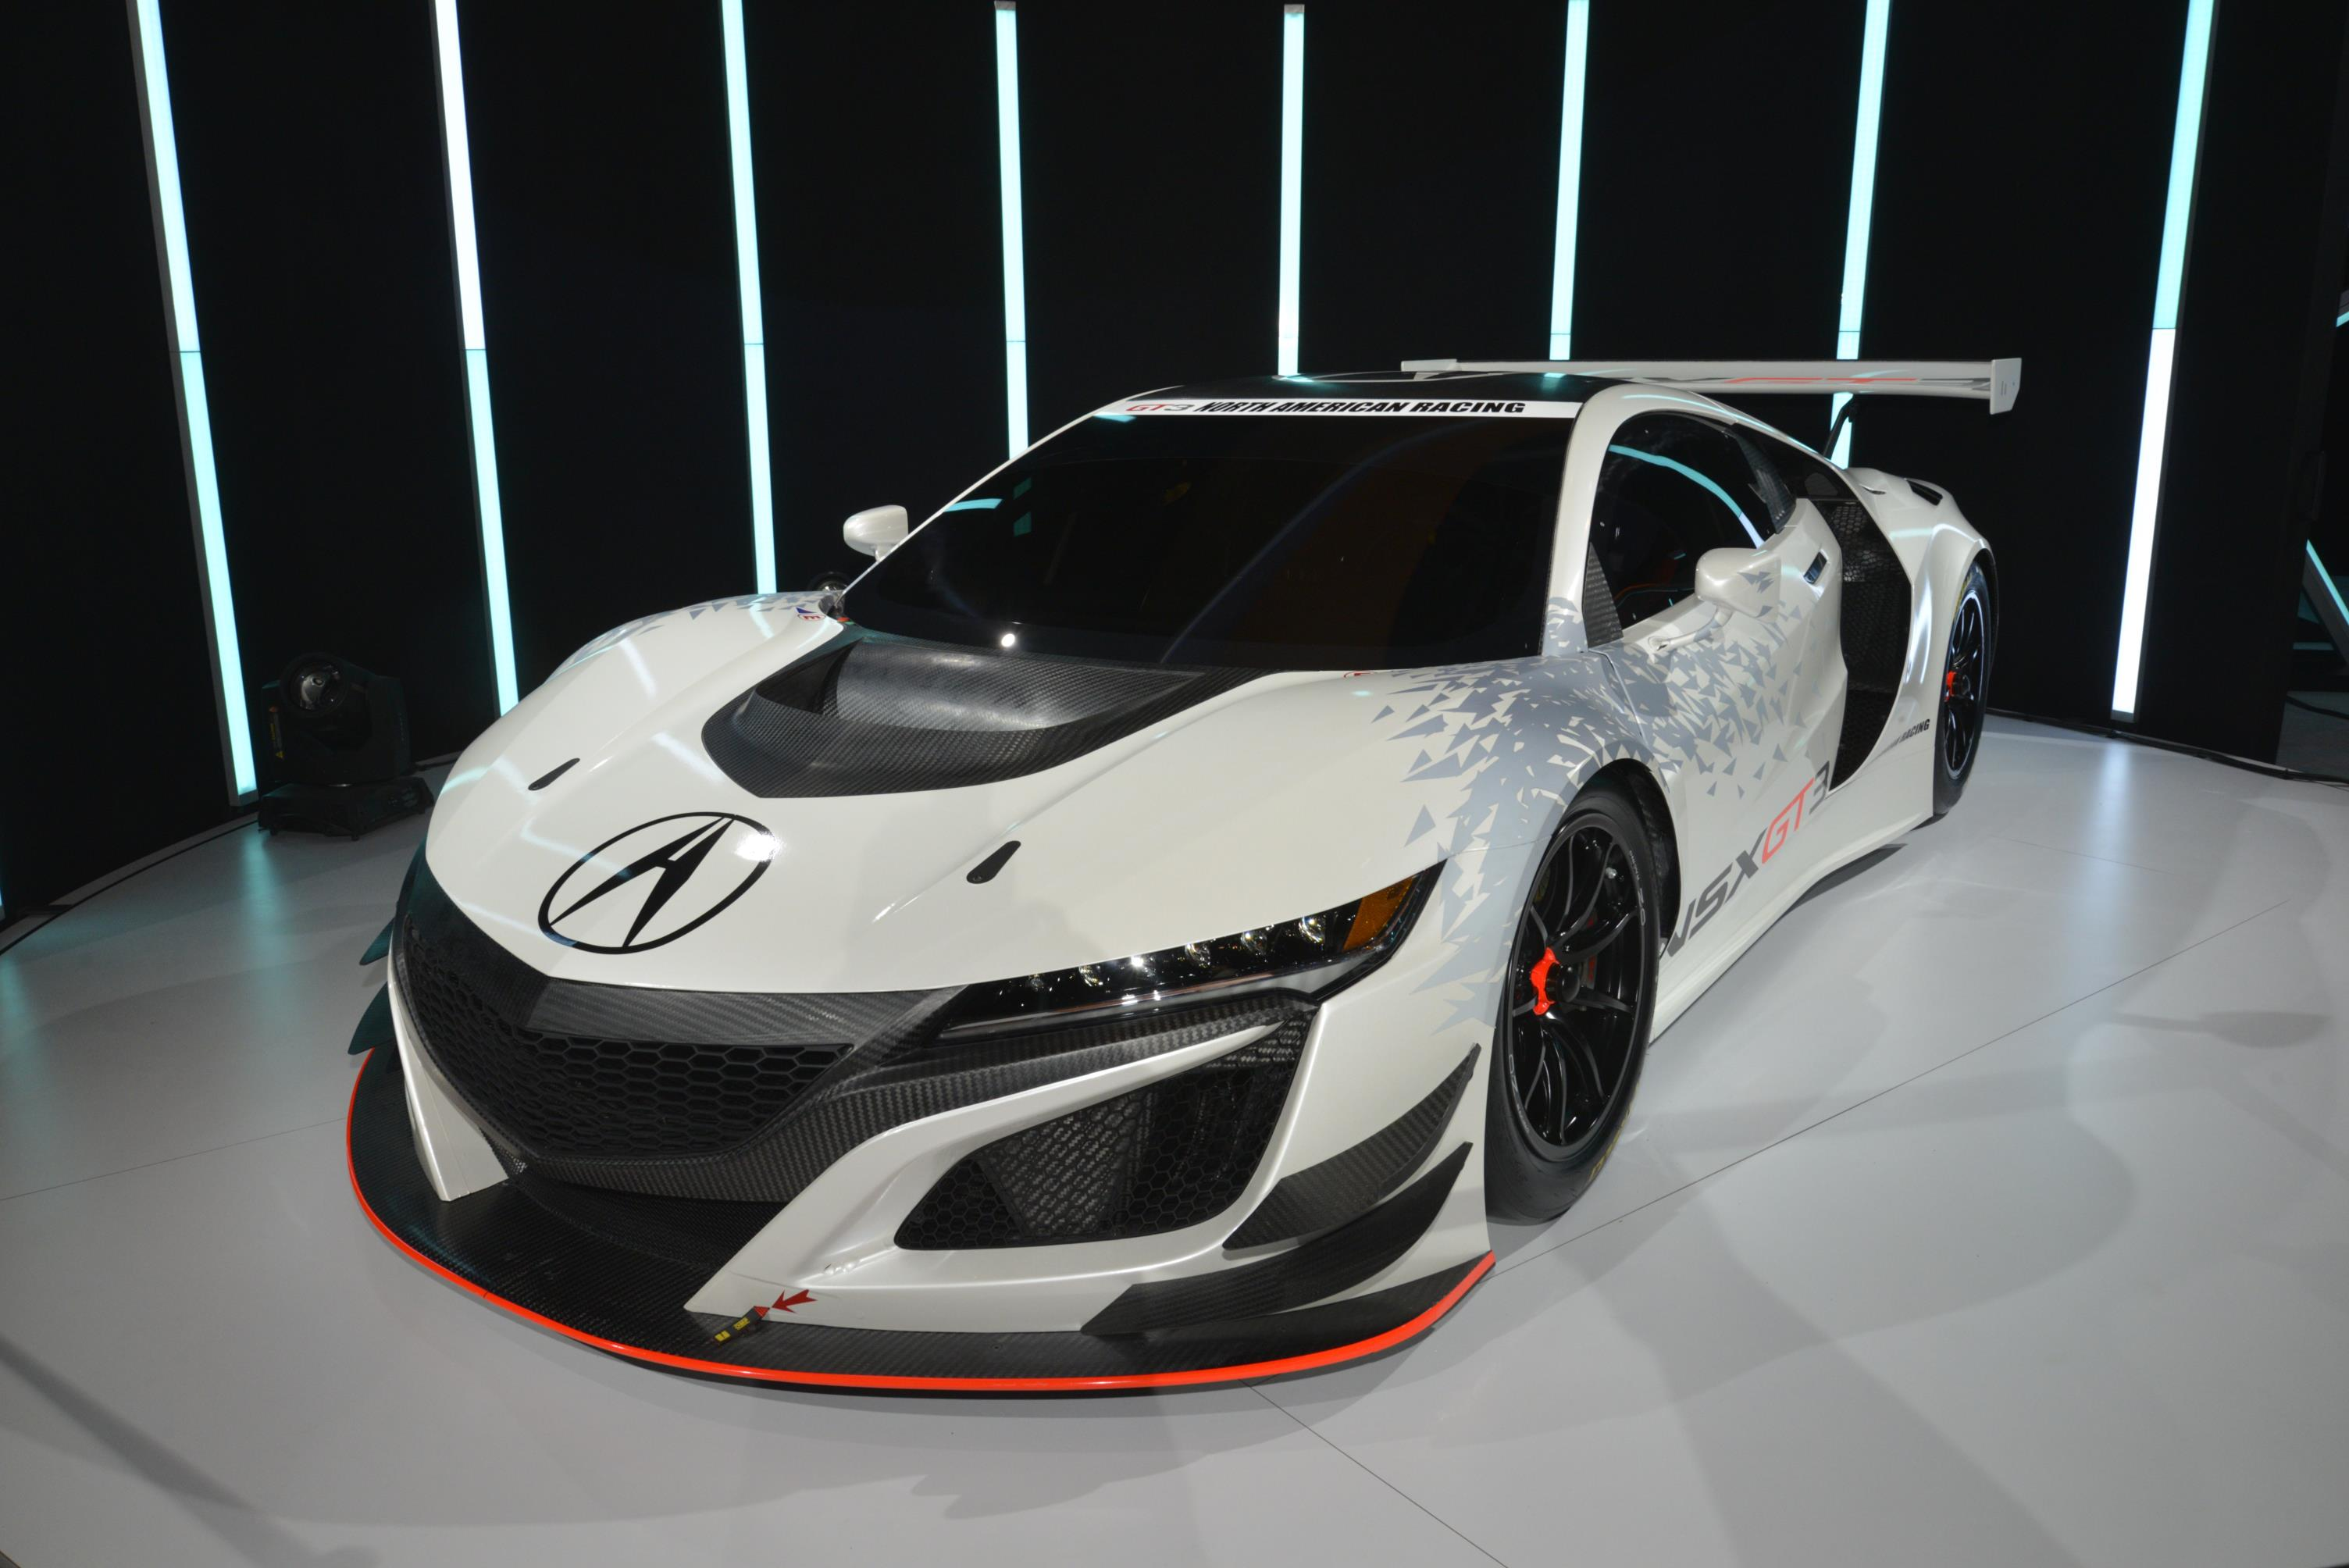 acura nsx gt3 hits new york as pure racecar no hybrid means rwd autoevolution. Black Bedroom Furniture Sets. Home Design Ideas